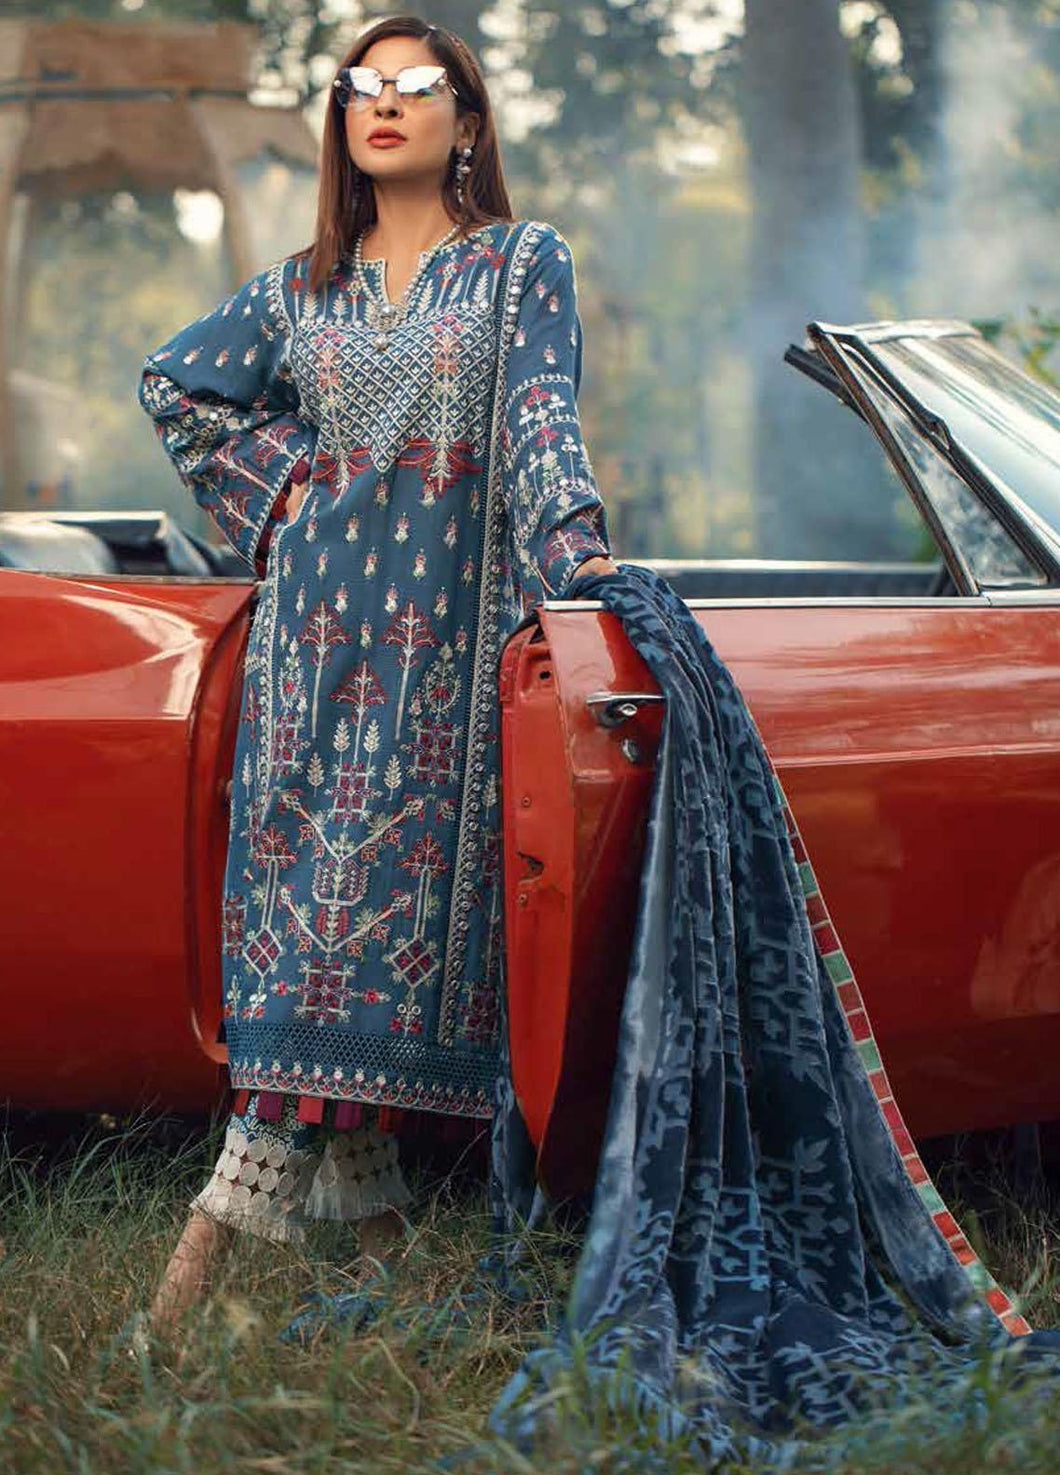 MARYAM HUSSAIN Winter Shawl Collection 2020-Tribal D05 most popular Pakistani outfits for evening wear and winter season in the UK, USA and France. These 3 pc unstitched, stitched & READY MADE Indian & Pakistani Suits are made from LAWN khaddar. Shop Designer Salwar Kameez by Maryam Hussain on SALE price at Lebaasonline